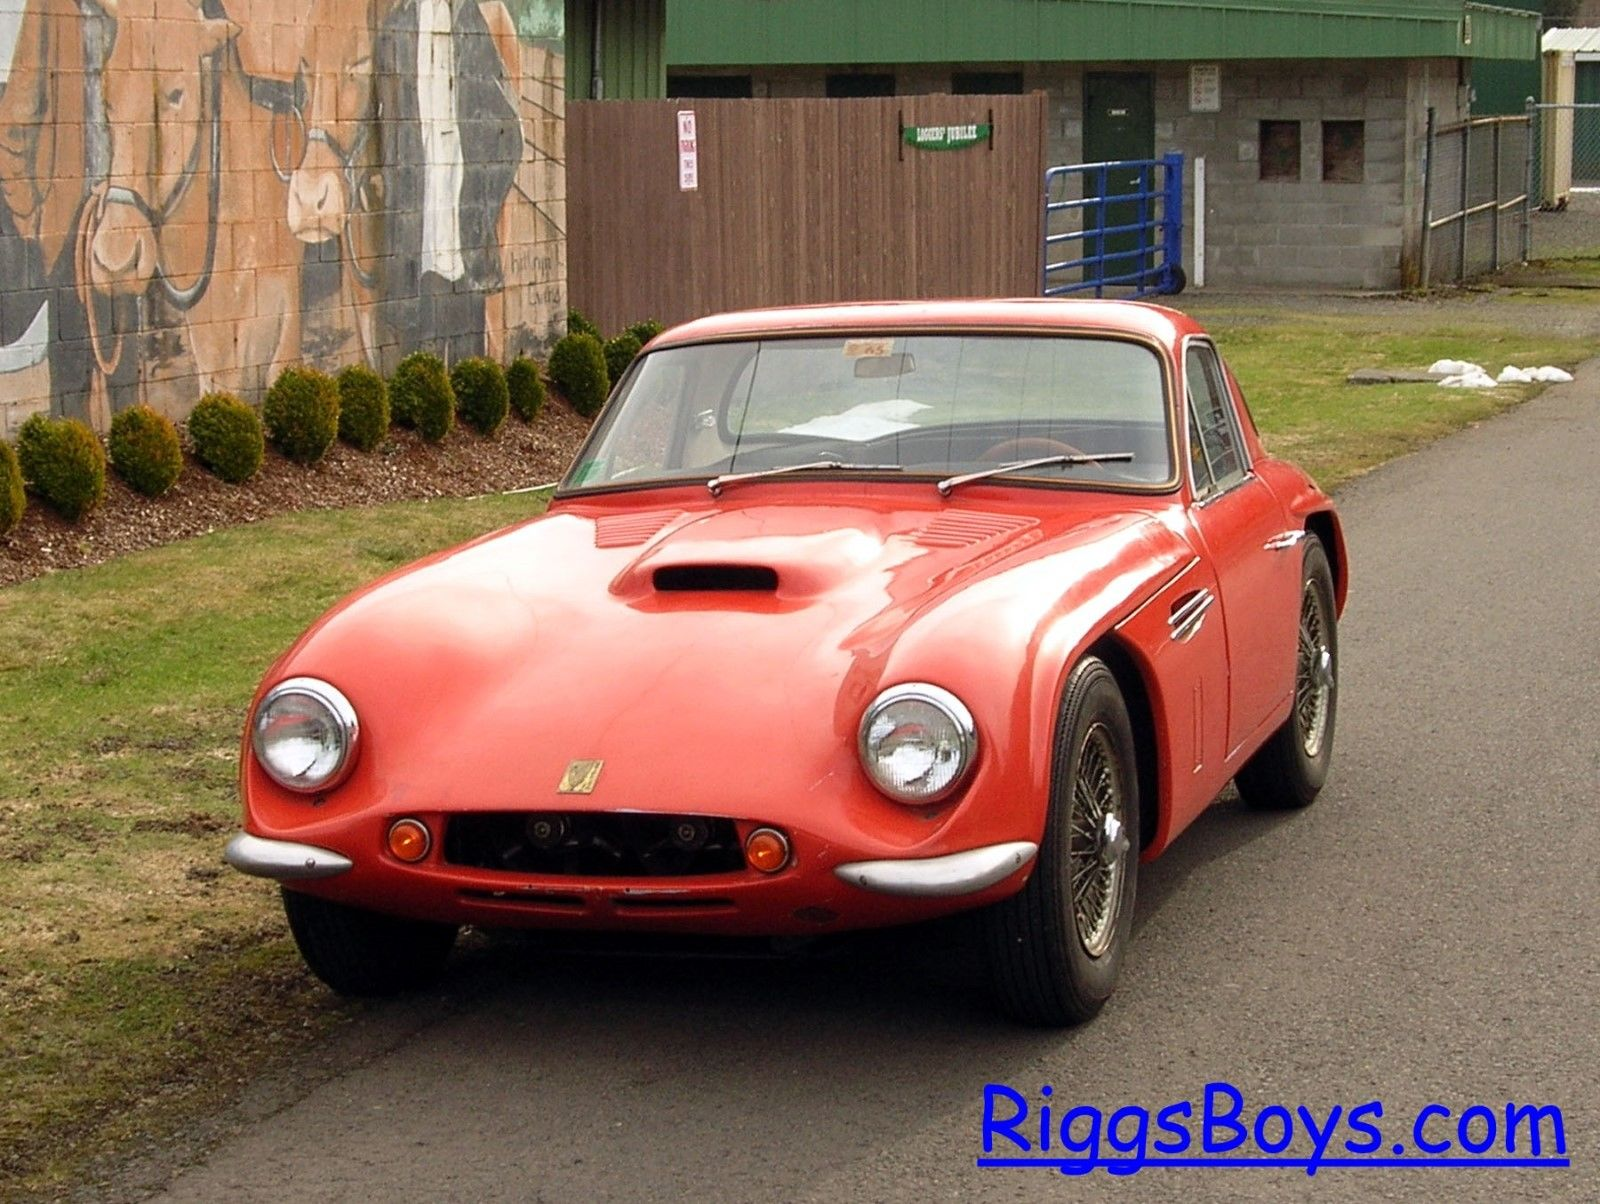 This 1965 TVR Griffith Has Drag Racing History And The Battle Scars To Prove It – Awesome Car